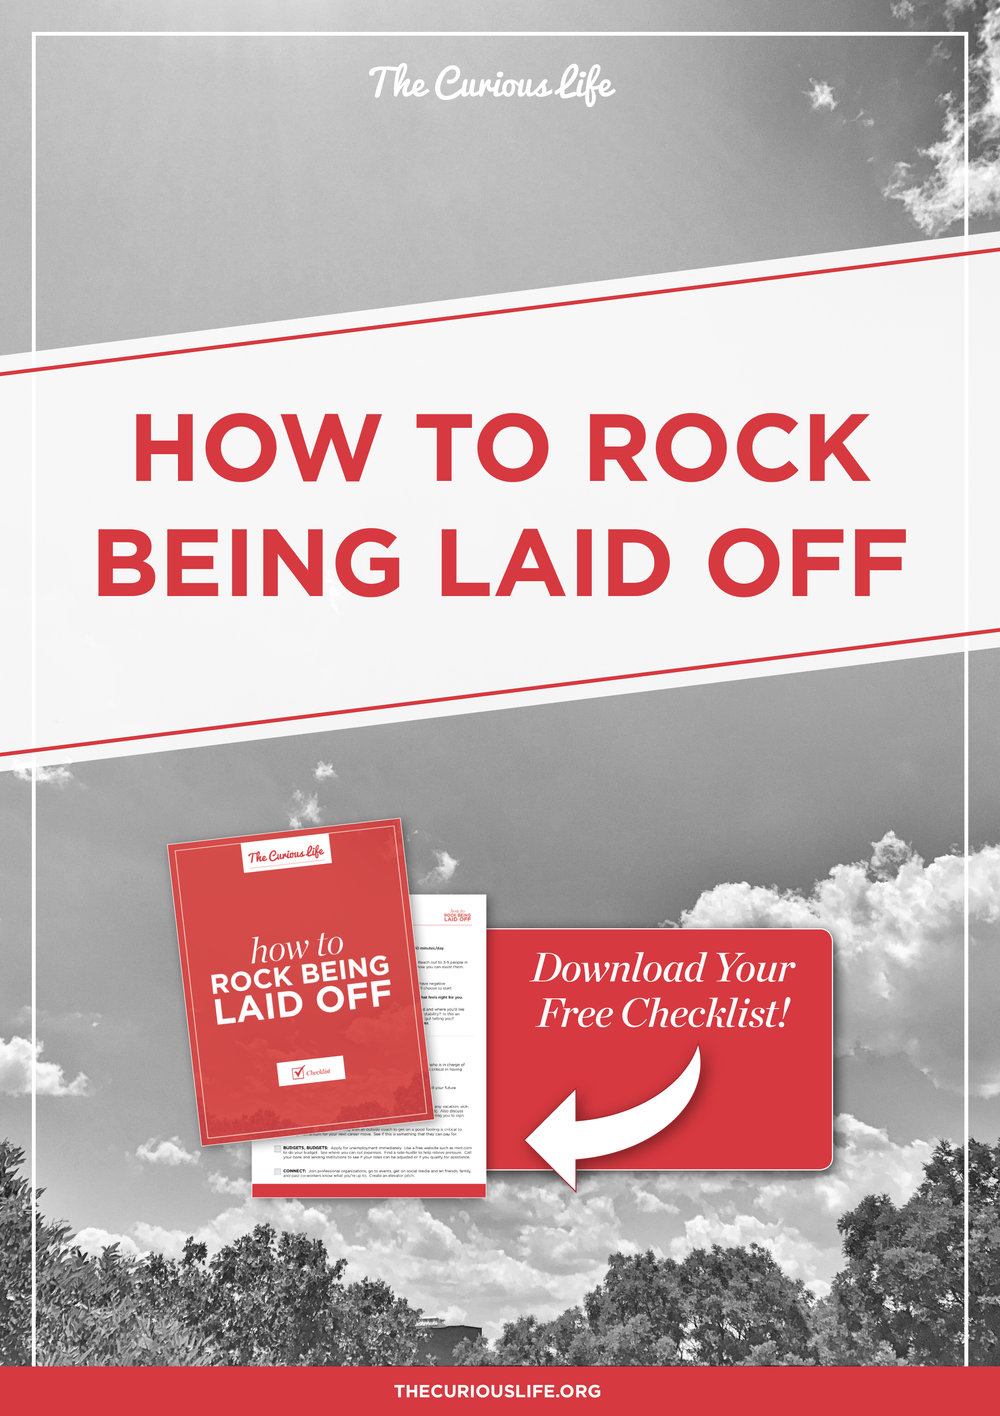 How to Rock Being Laid Off